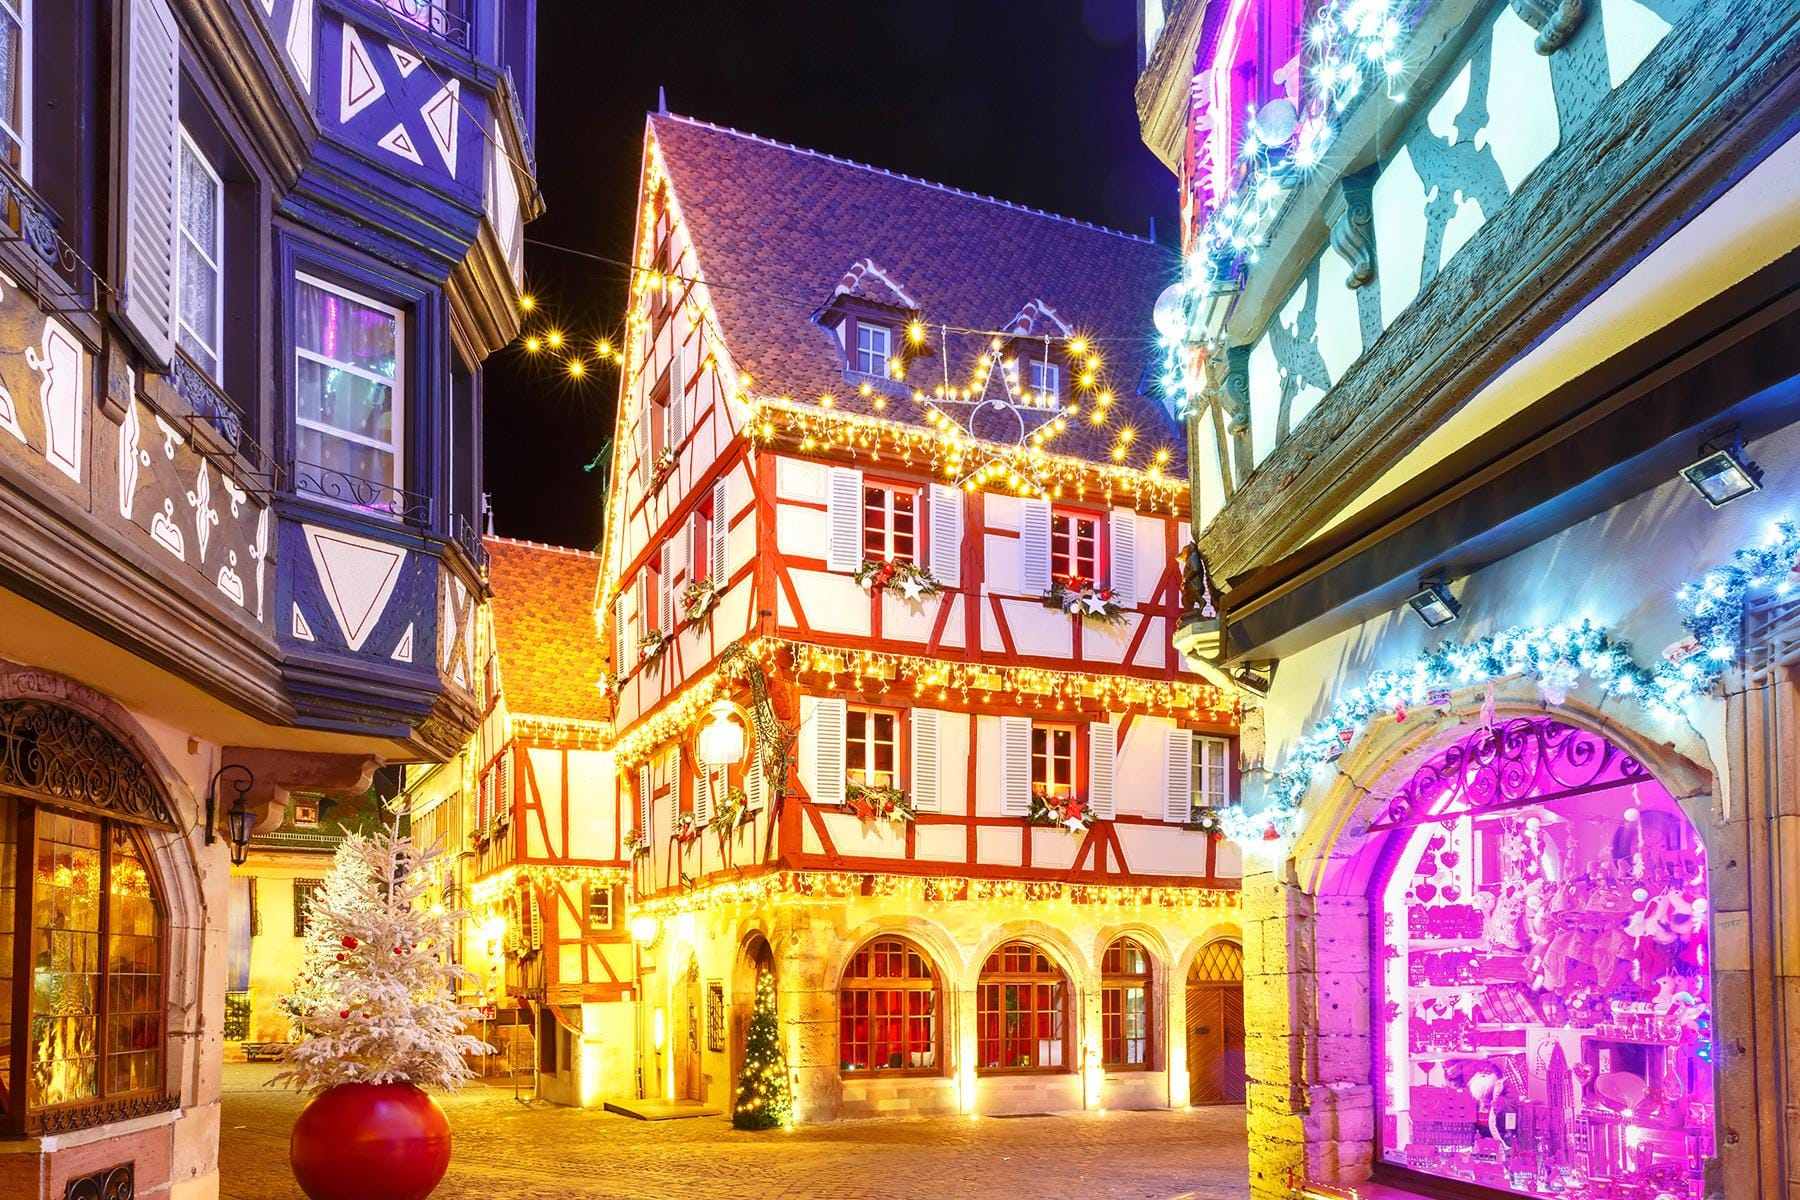 25/11/2016· france has a very diverse landscape. The Cutest and Most Festive Cities and Towns for ...